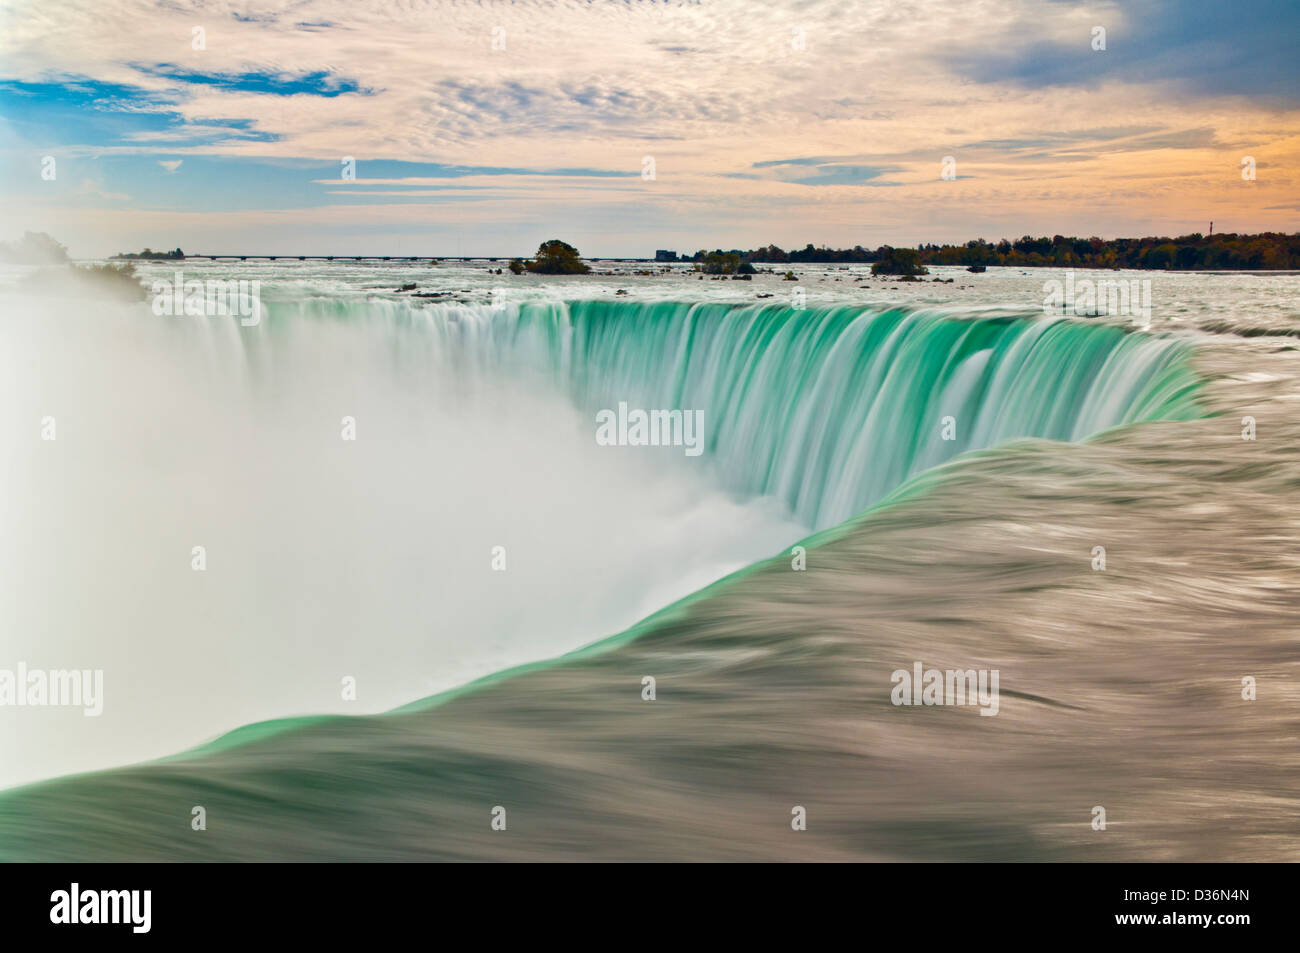 Blurry slow motion water falling over the top of the Horseshoe falls waterfall at Niagara falls Ontario Canada - Stock Image